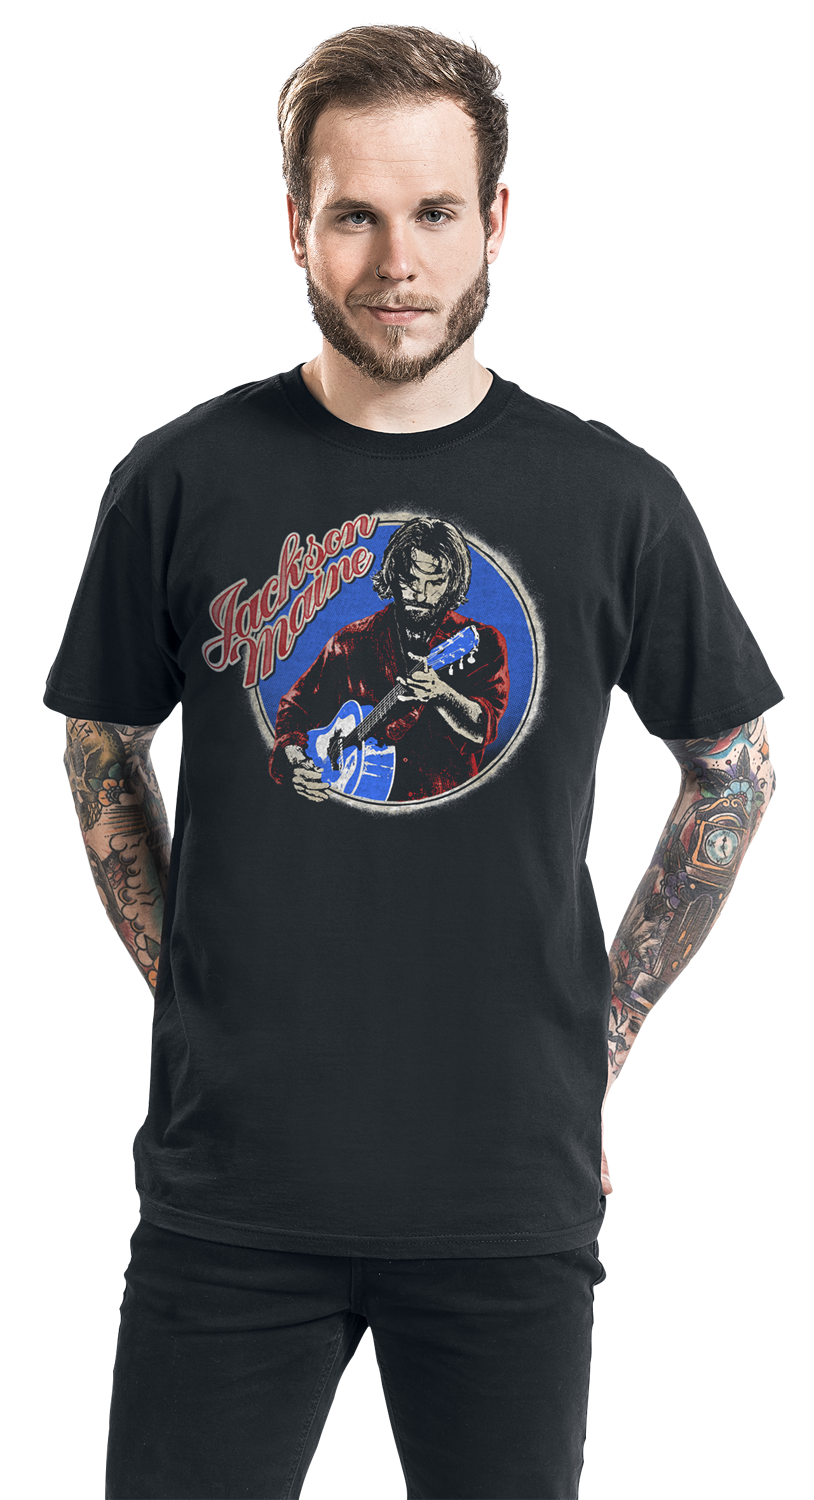 Image of A Star Is Born Jackson Maine T-Shirt schwarz